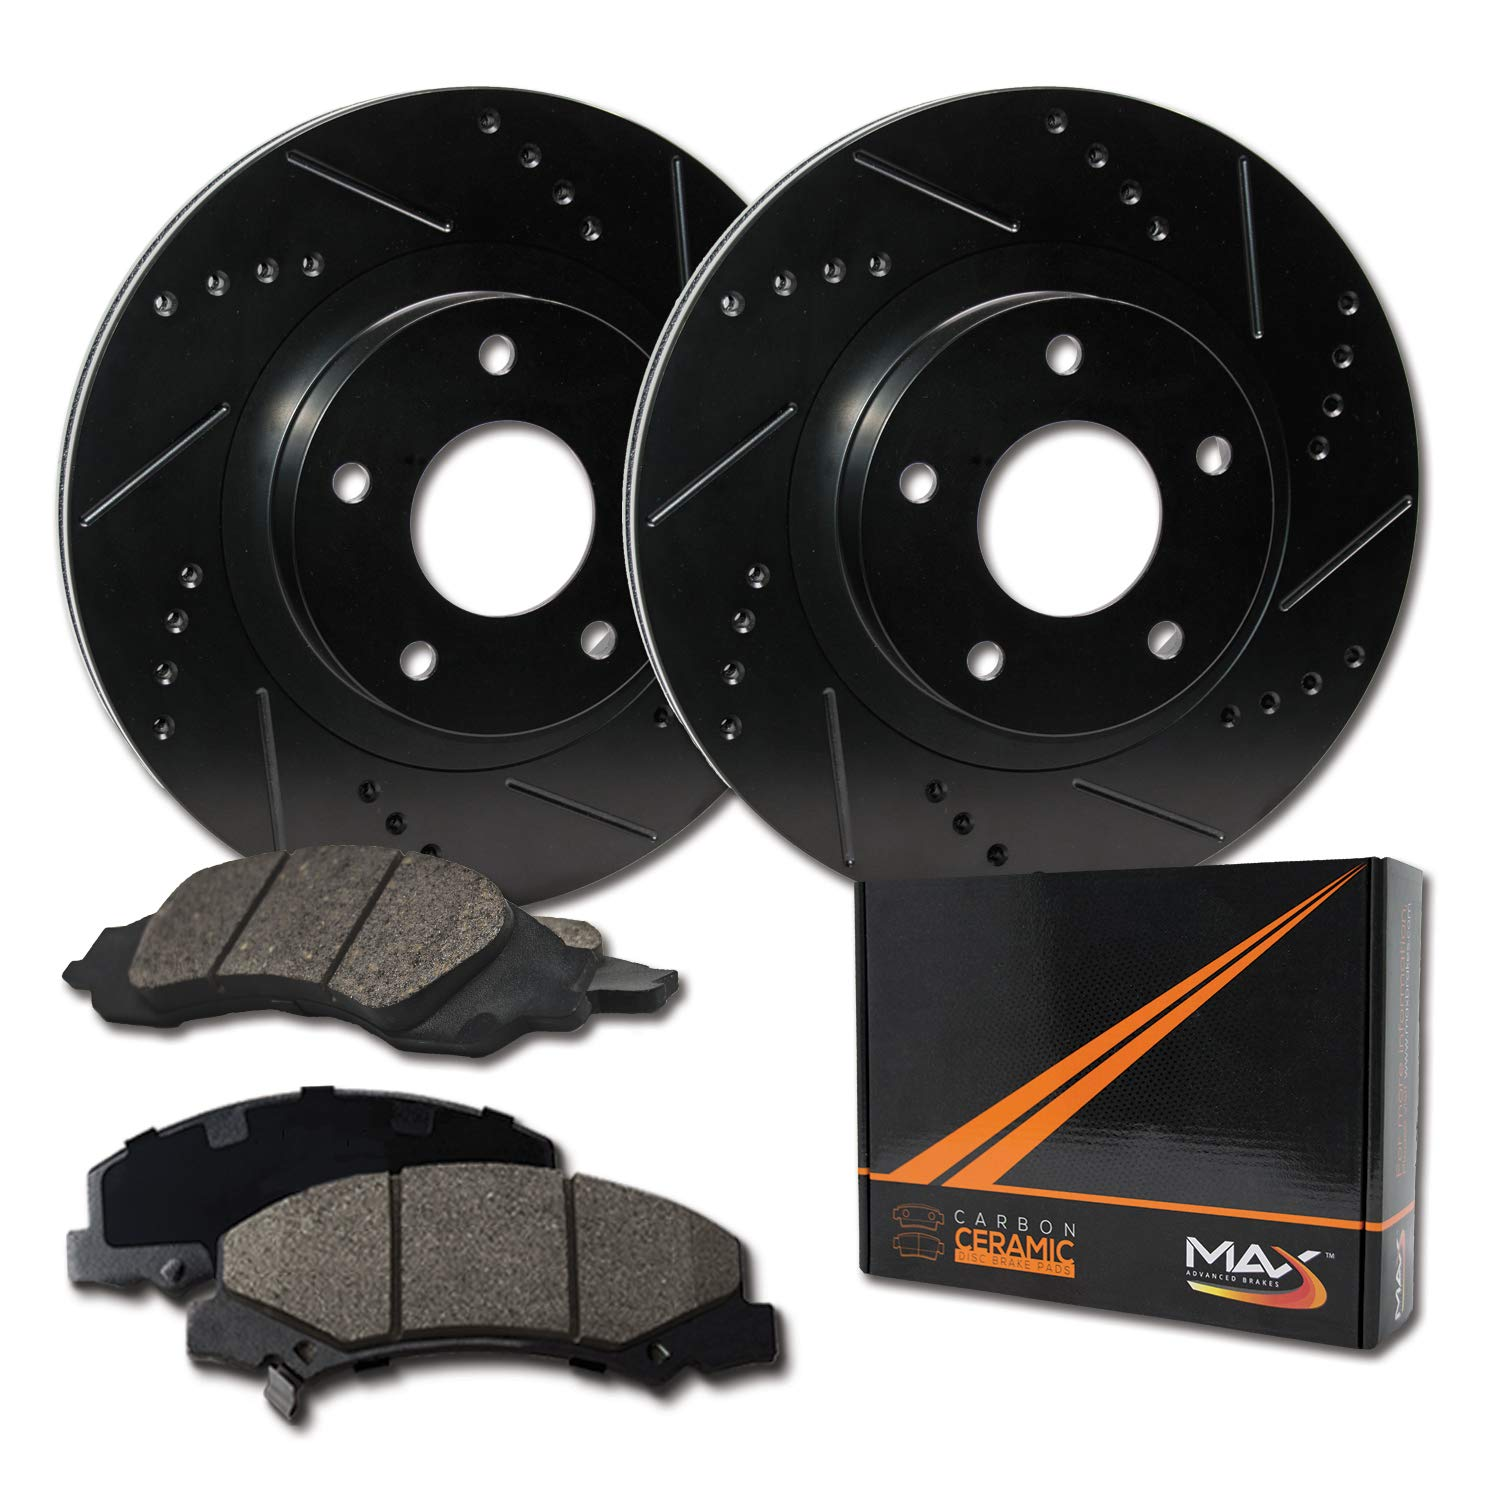 Max Brakes Front Elite Brake Kit [ E-Coated Slotted Drilled Rotors + Ceramic Pads ] KT012681 Fits: Chevy 03-05 Astro Express & Avalanche 1500|00-06 Tahoe Silverado & Suburban 1500 by Max Advanced Brakes